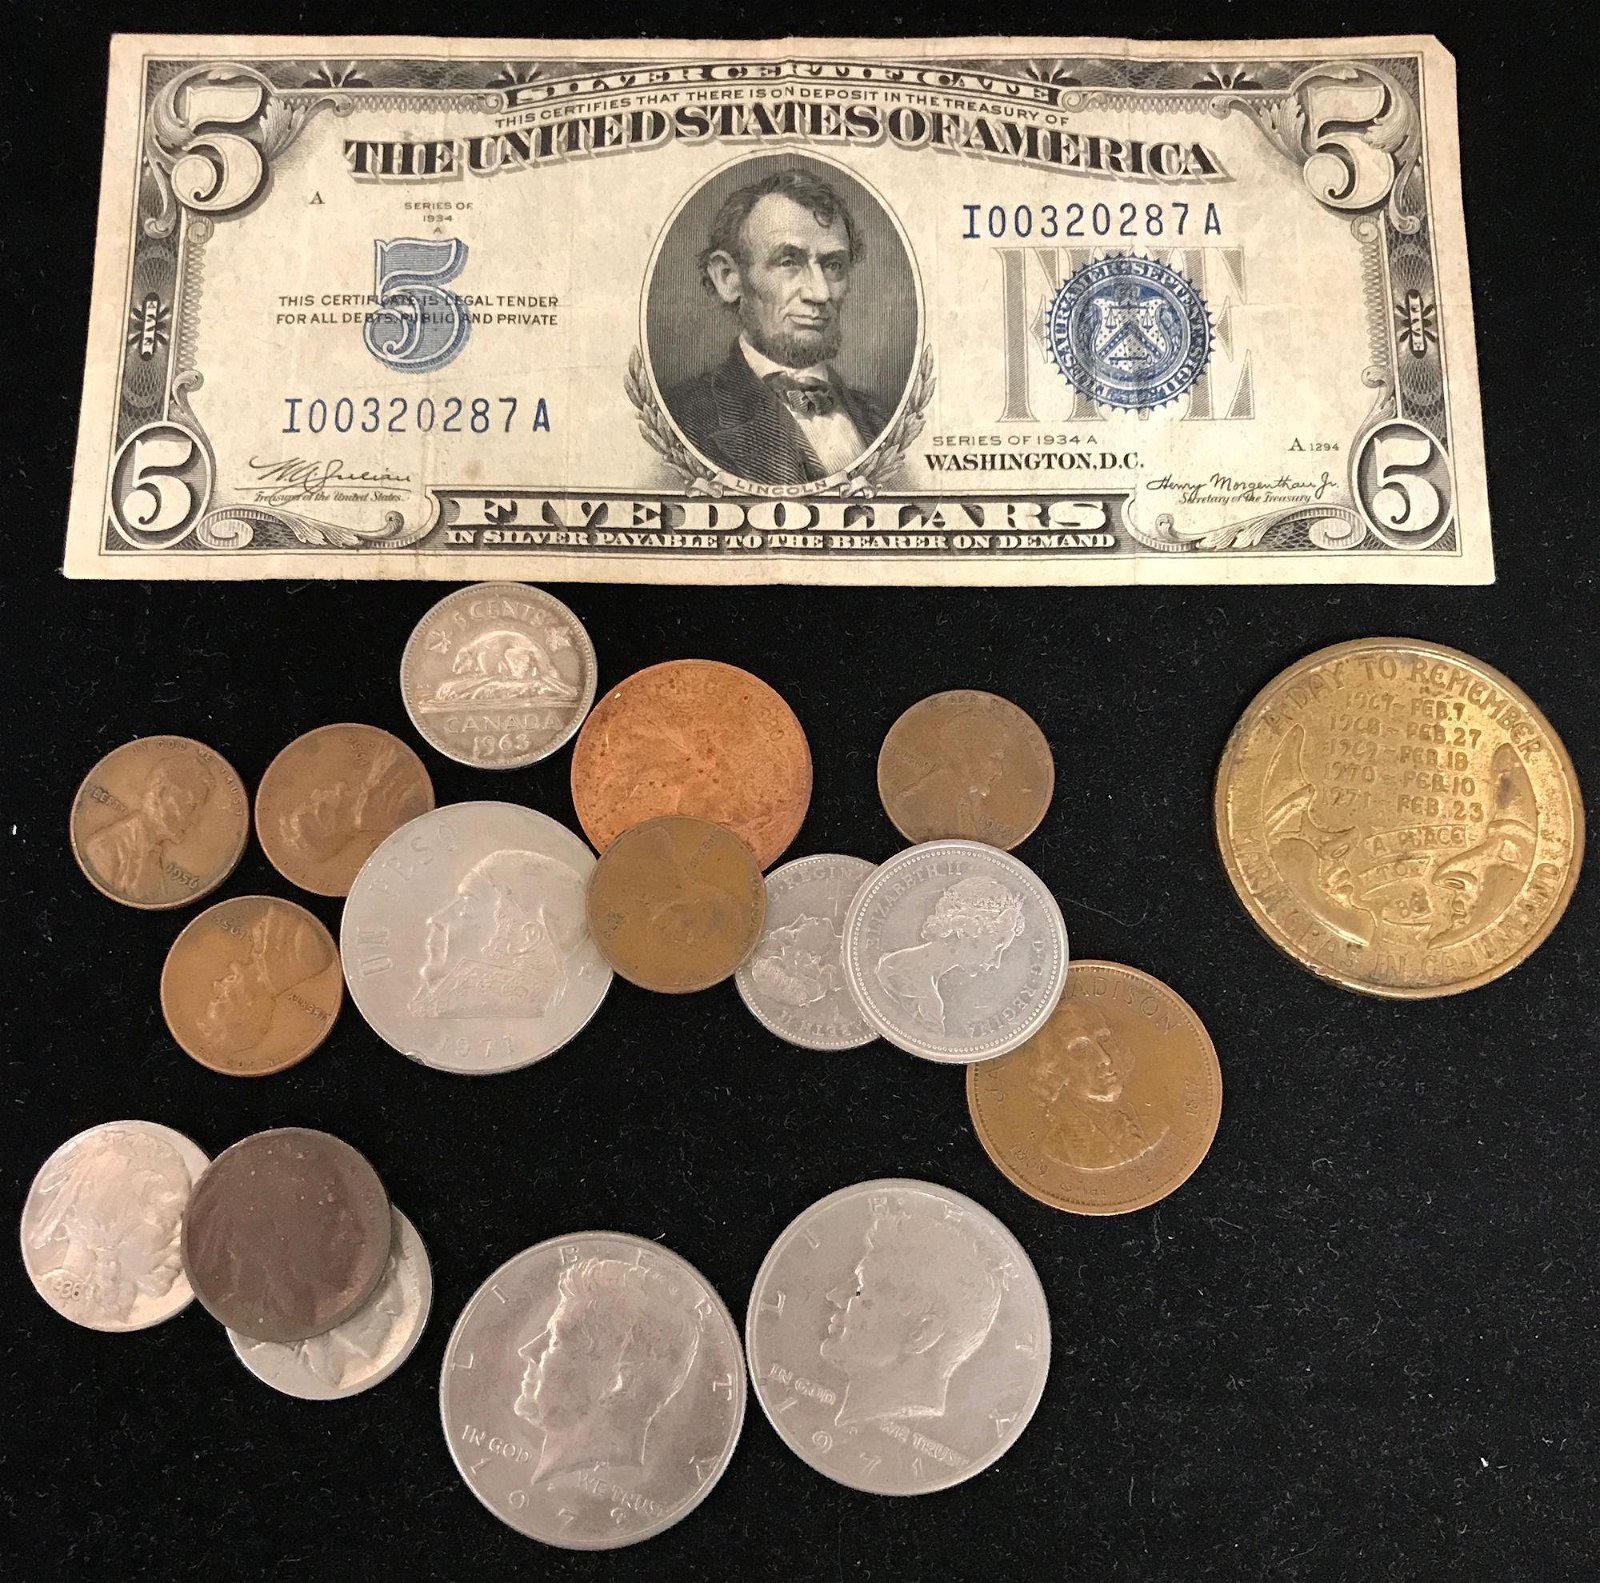 MIXED LOT INCLUDING SERIES 1934 FIVE DOLLAR SILVER